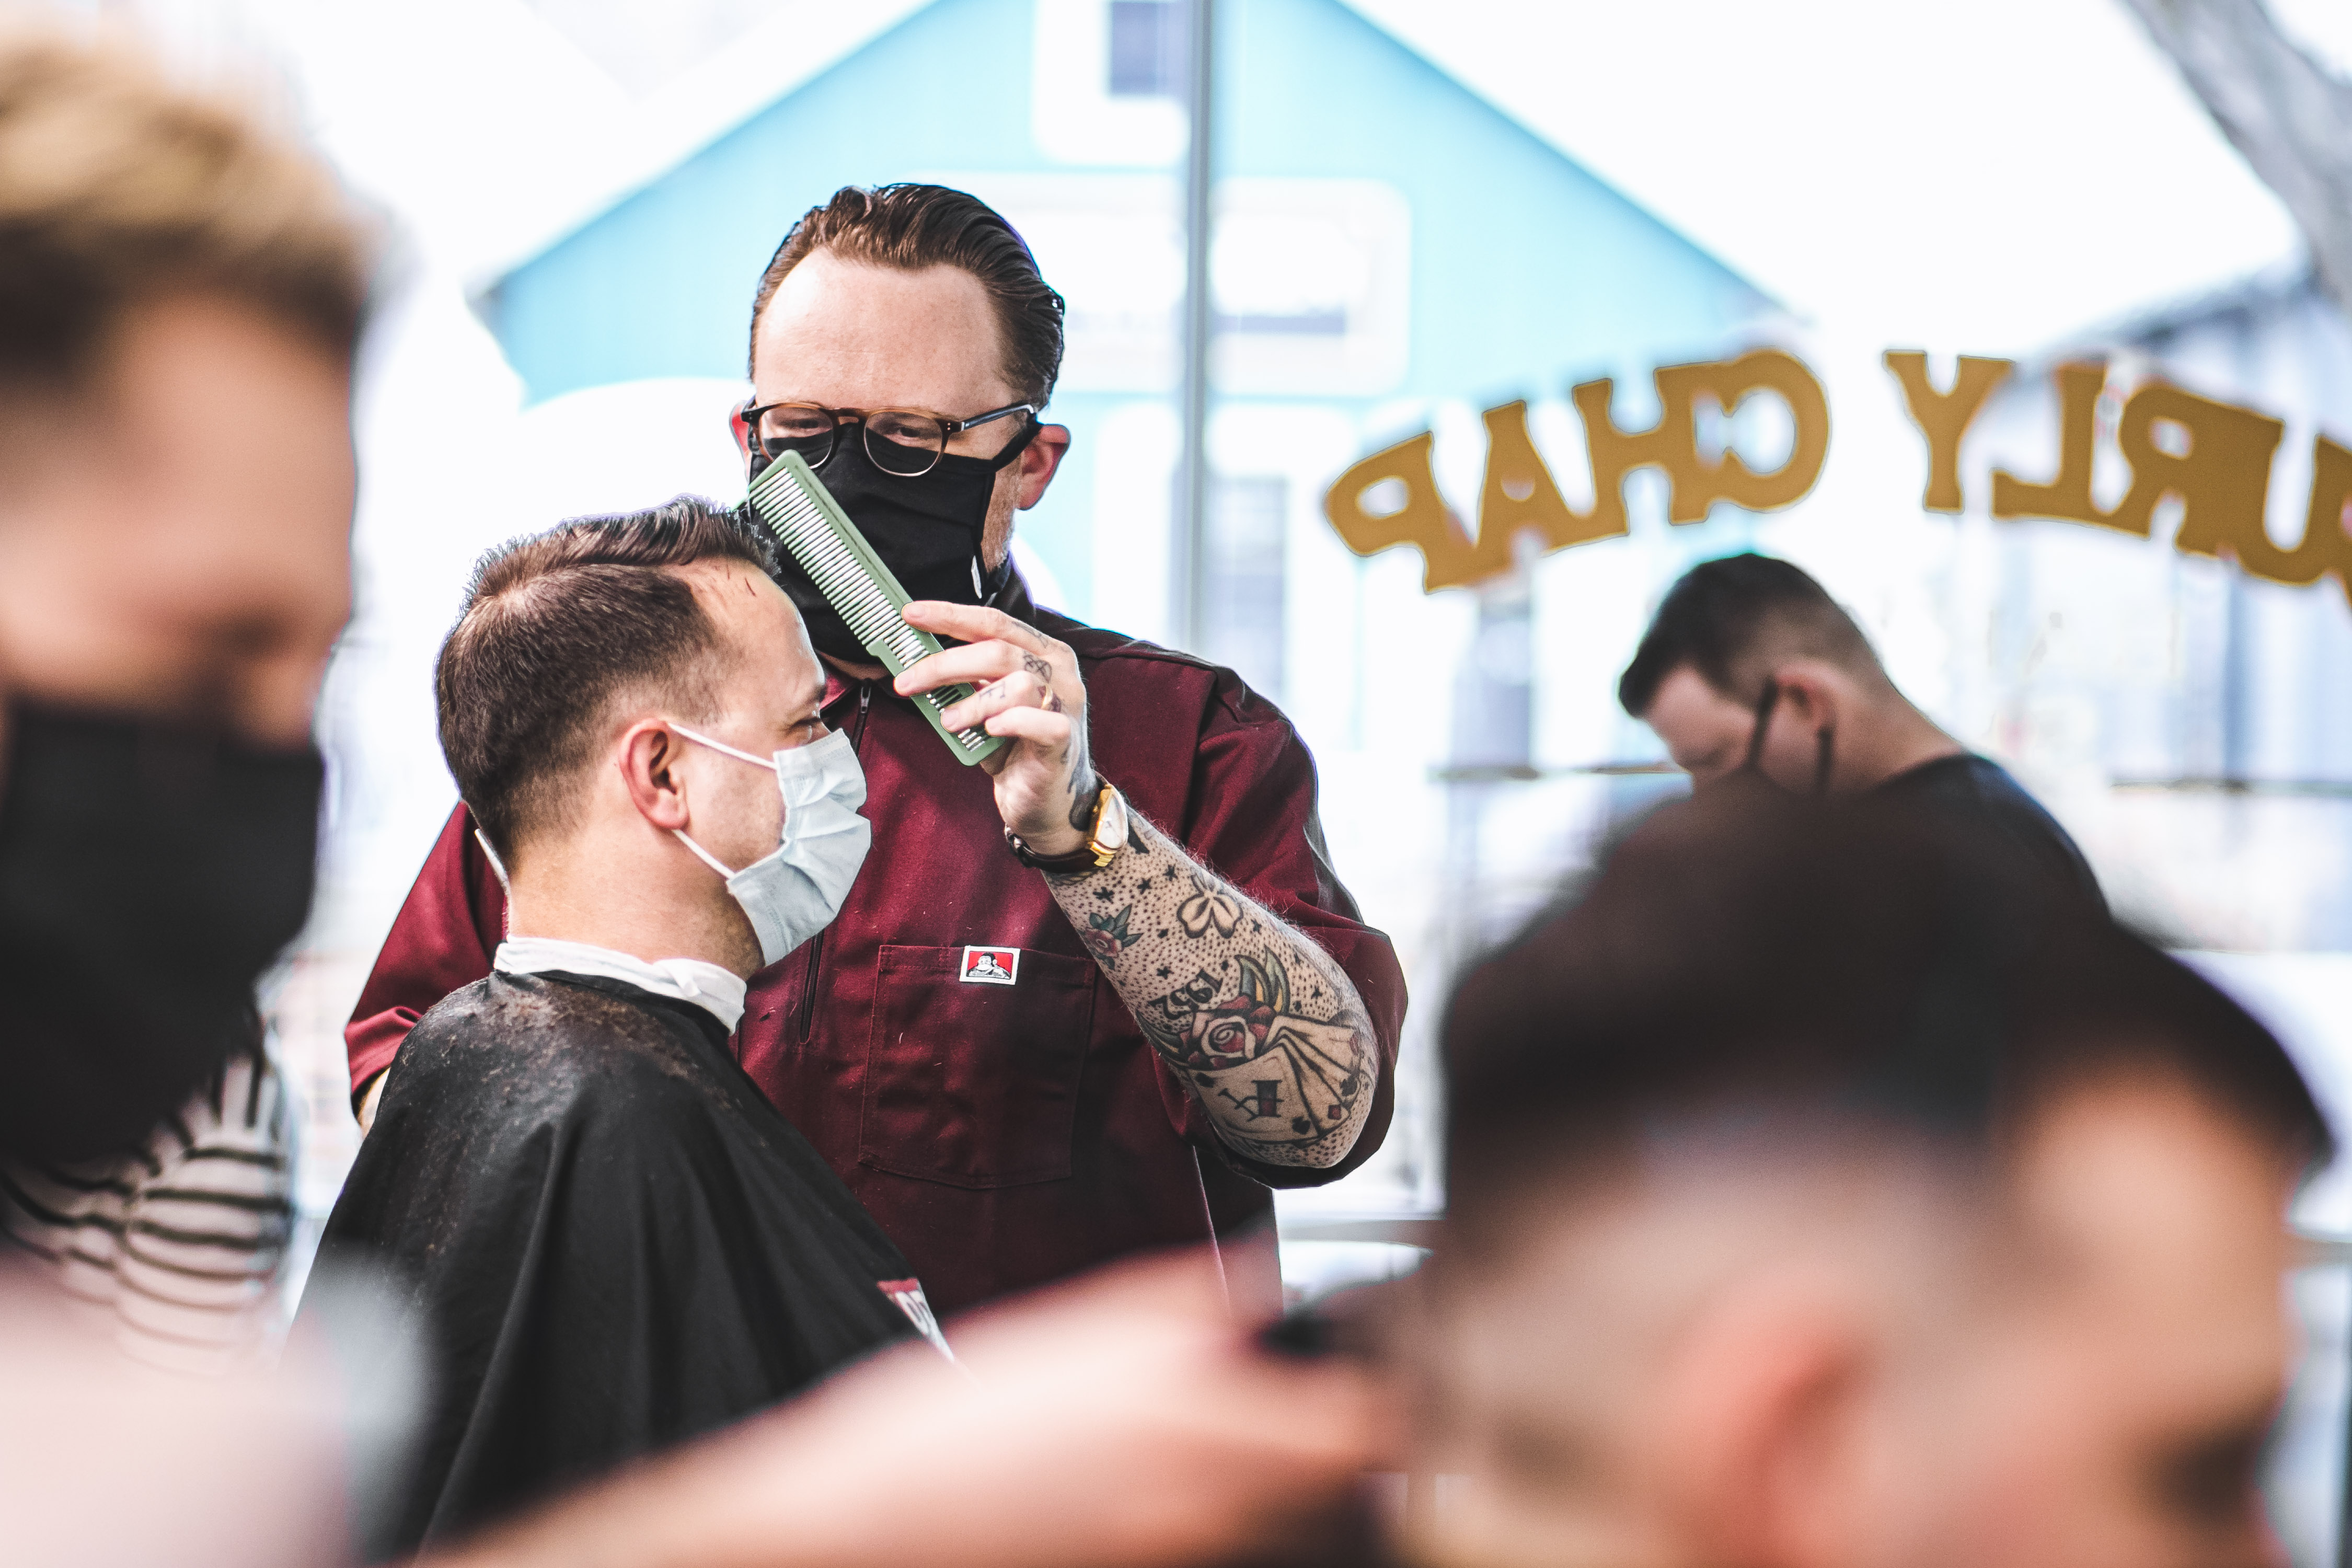 Photo of the owner Lew cutting a customer's hair